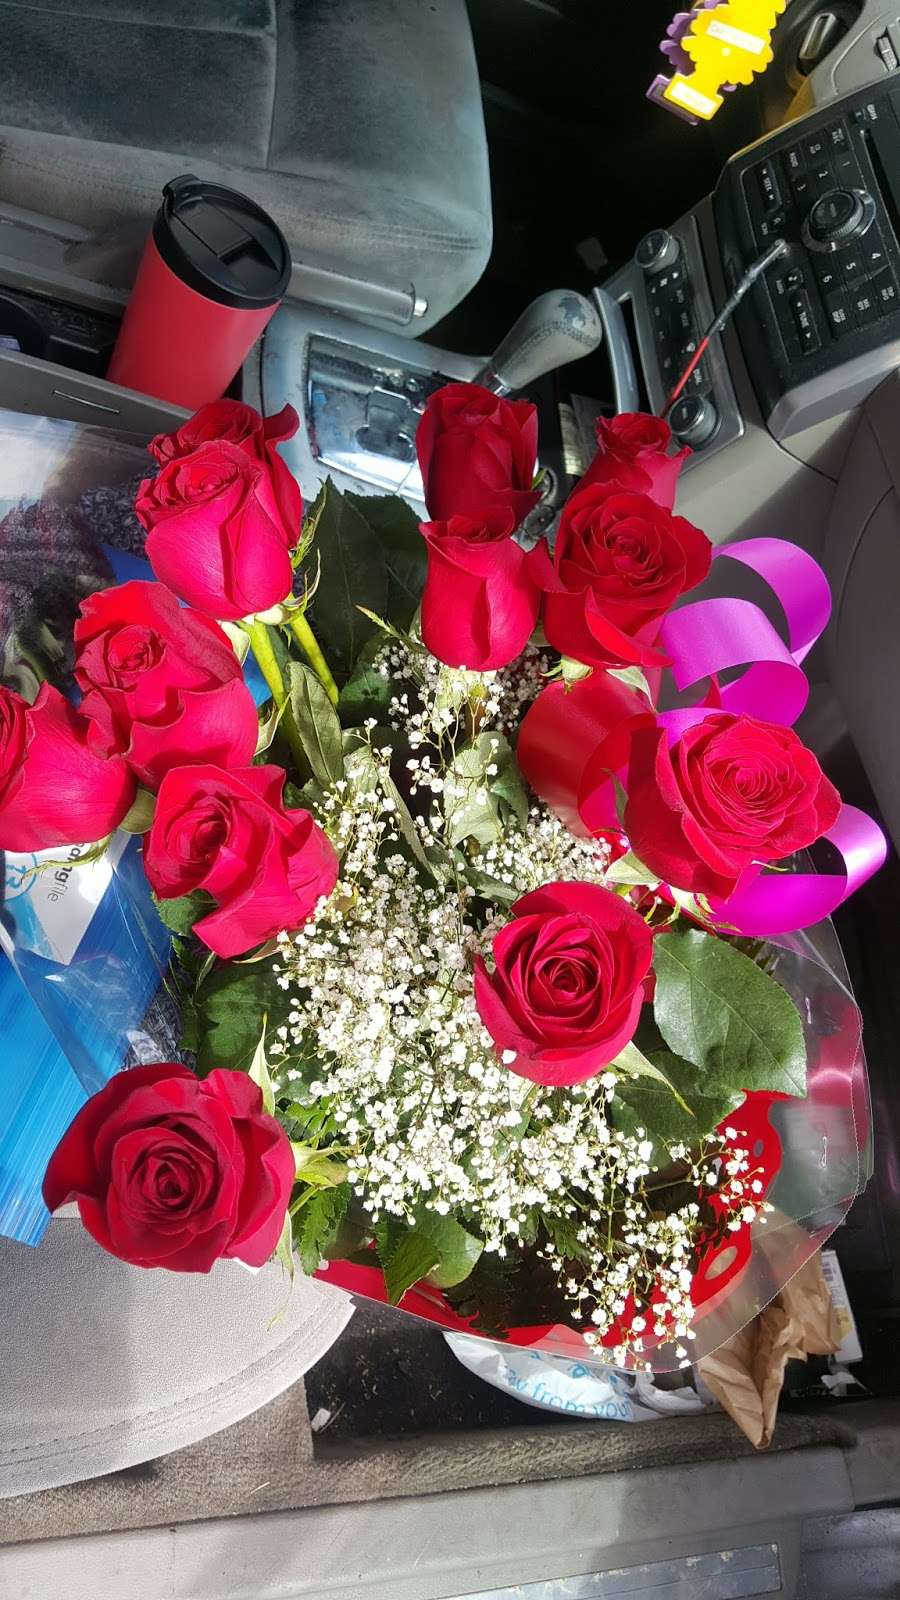 Fosters Flowers - florist  | Photo 2 of 5 | Address: 1203 Foster Ave, Brooklyn, NY 11230, USA | Phone: (718) 859-2222